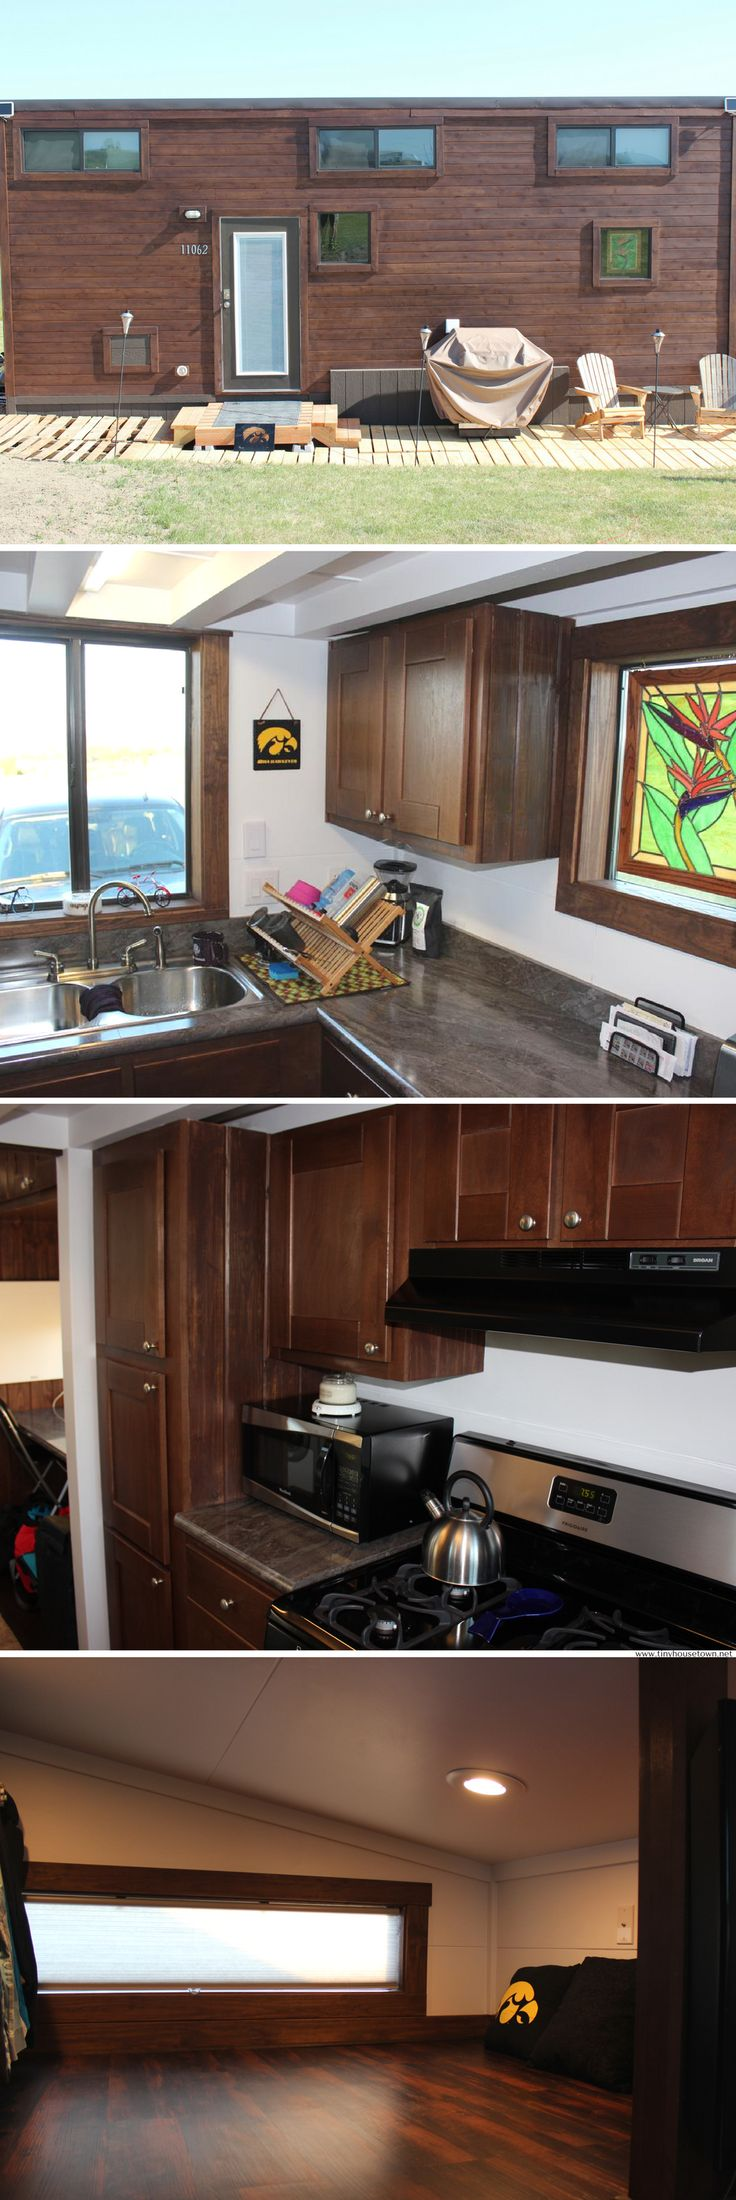 The Morrison: a 300 sq ft tiny house with two bedrooms